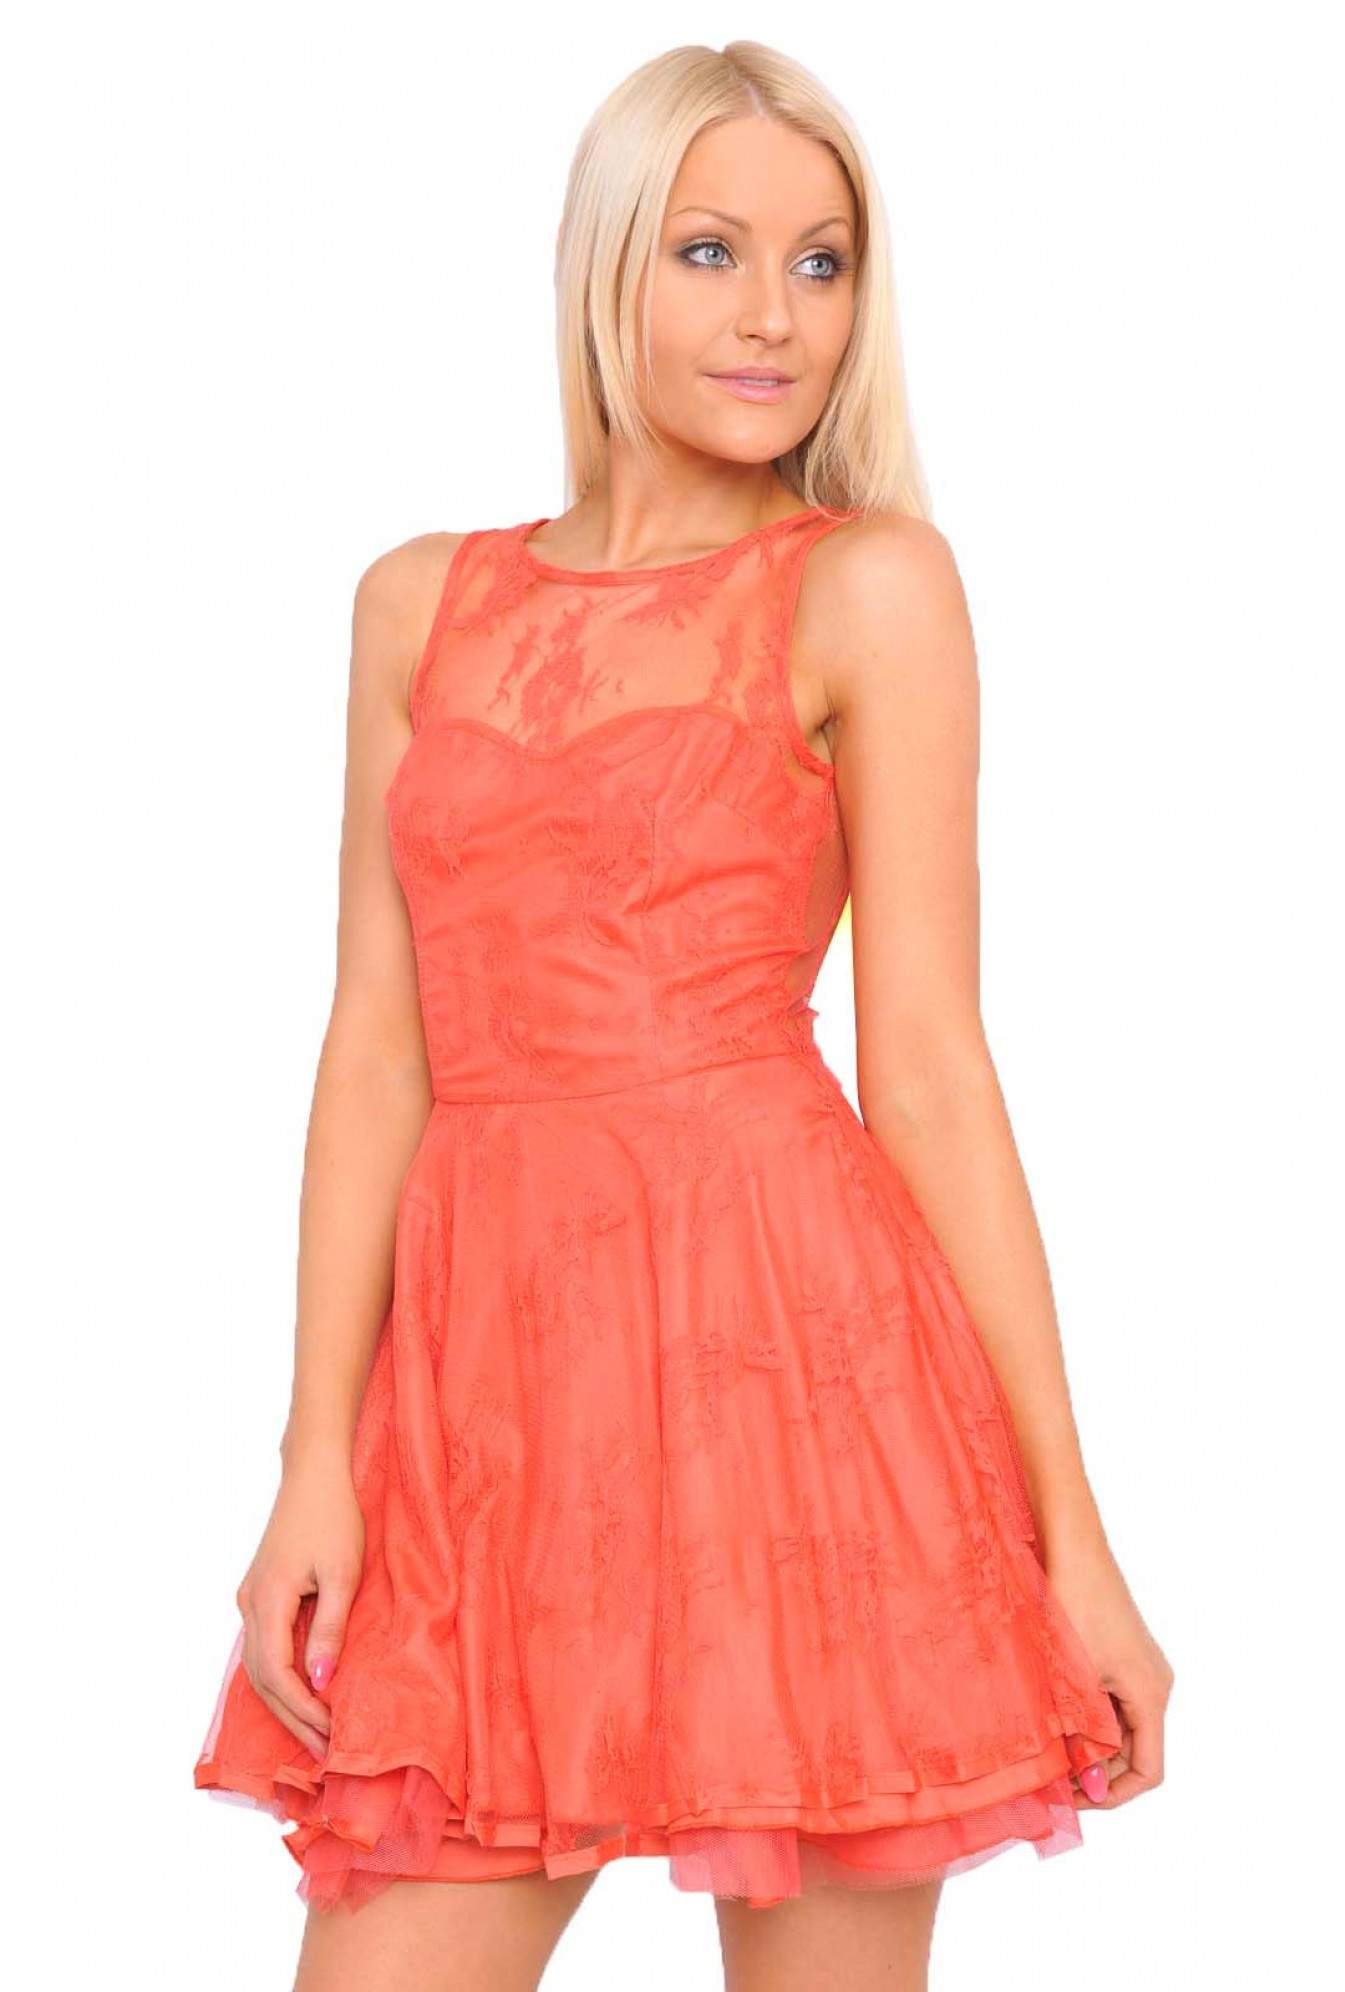 8a2c5d9be2aa More Views. Sade Lace Kick Out Skater Dress in Coral. AX Paris